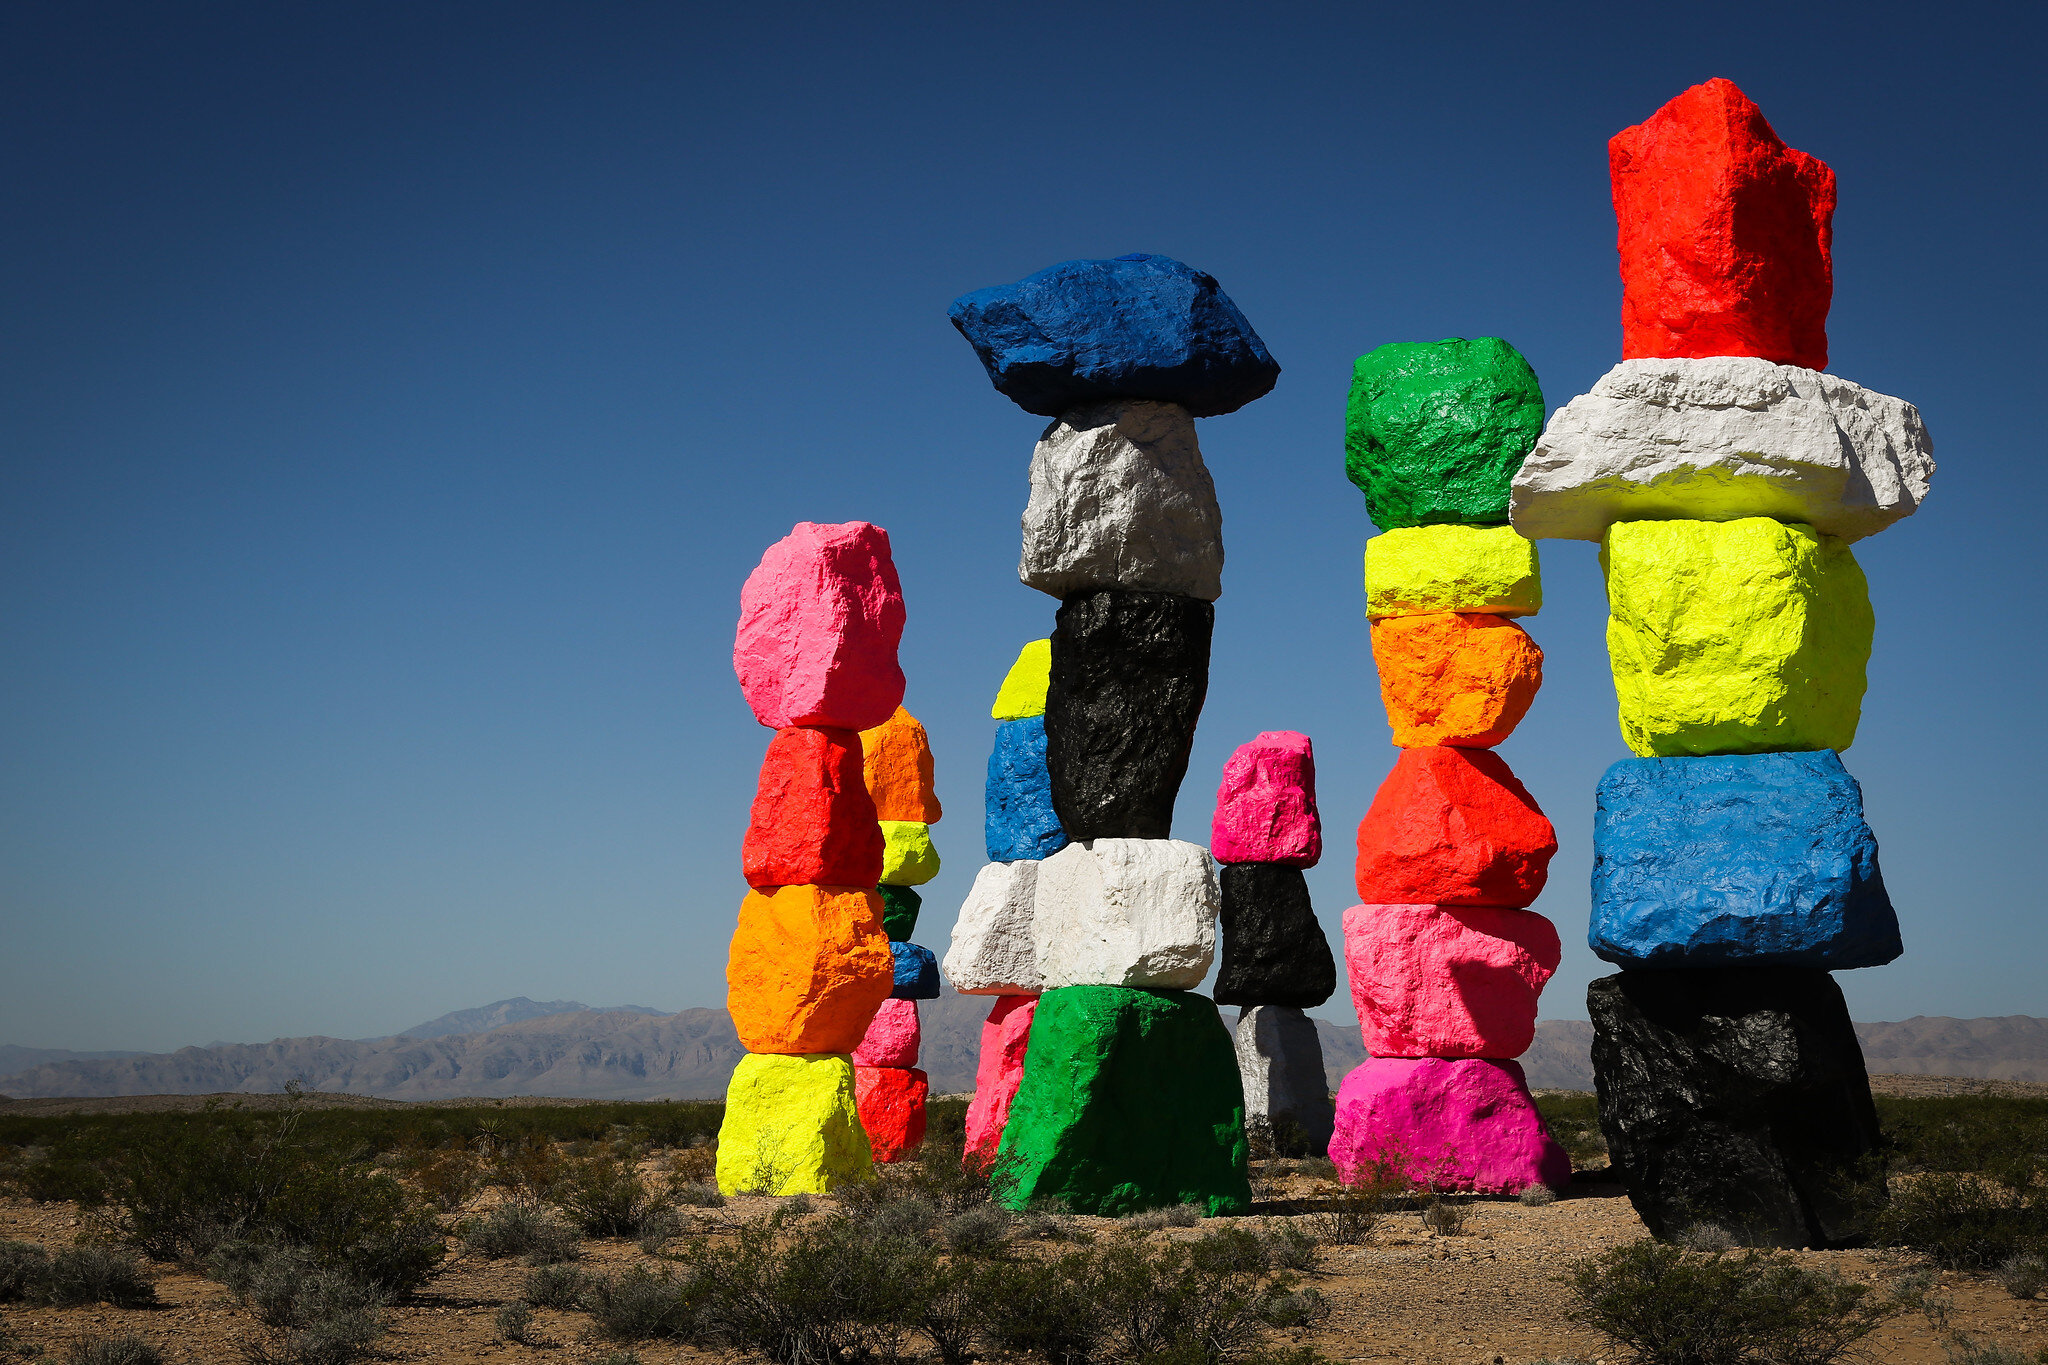 Ugo Rondinone,  Seven Magic Mountains , 2016, a public artwork partly made possible through Kickstarter. Photography by  F  lickr user Kimberly Reinhart .